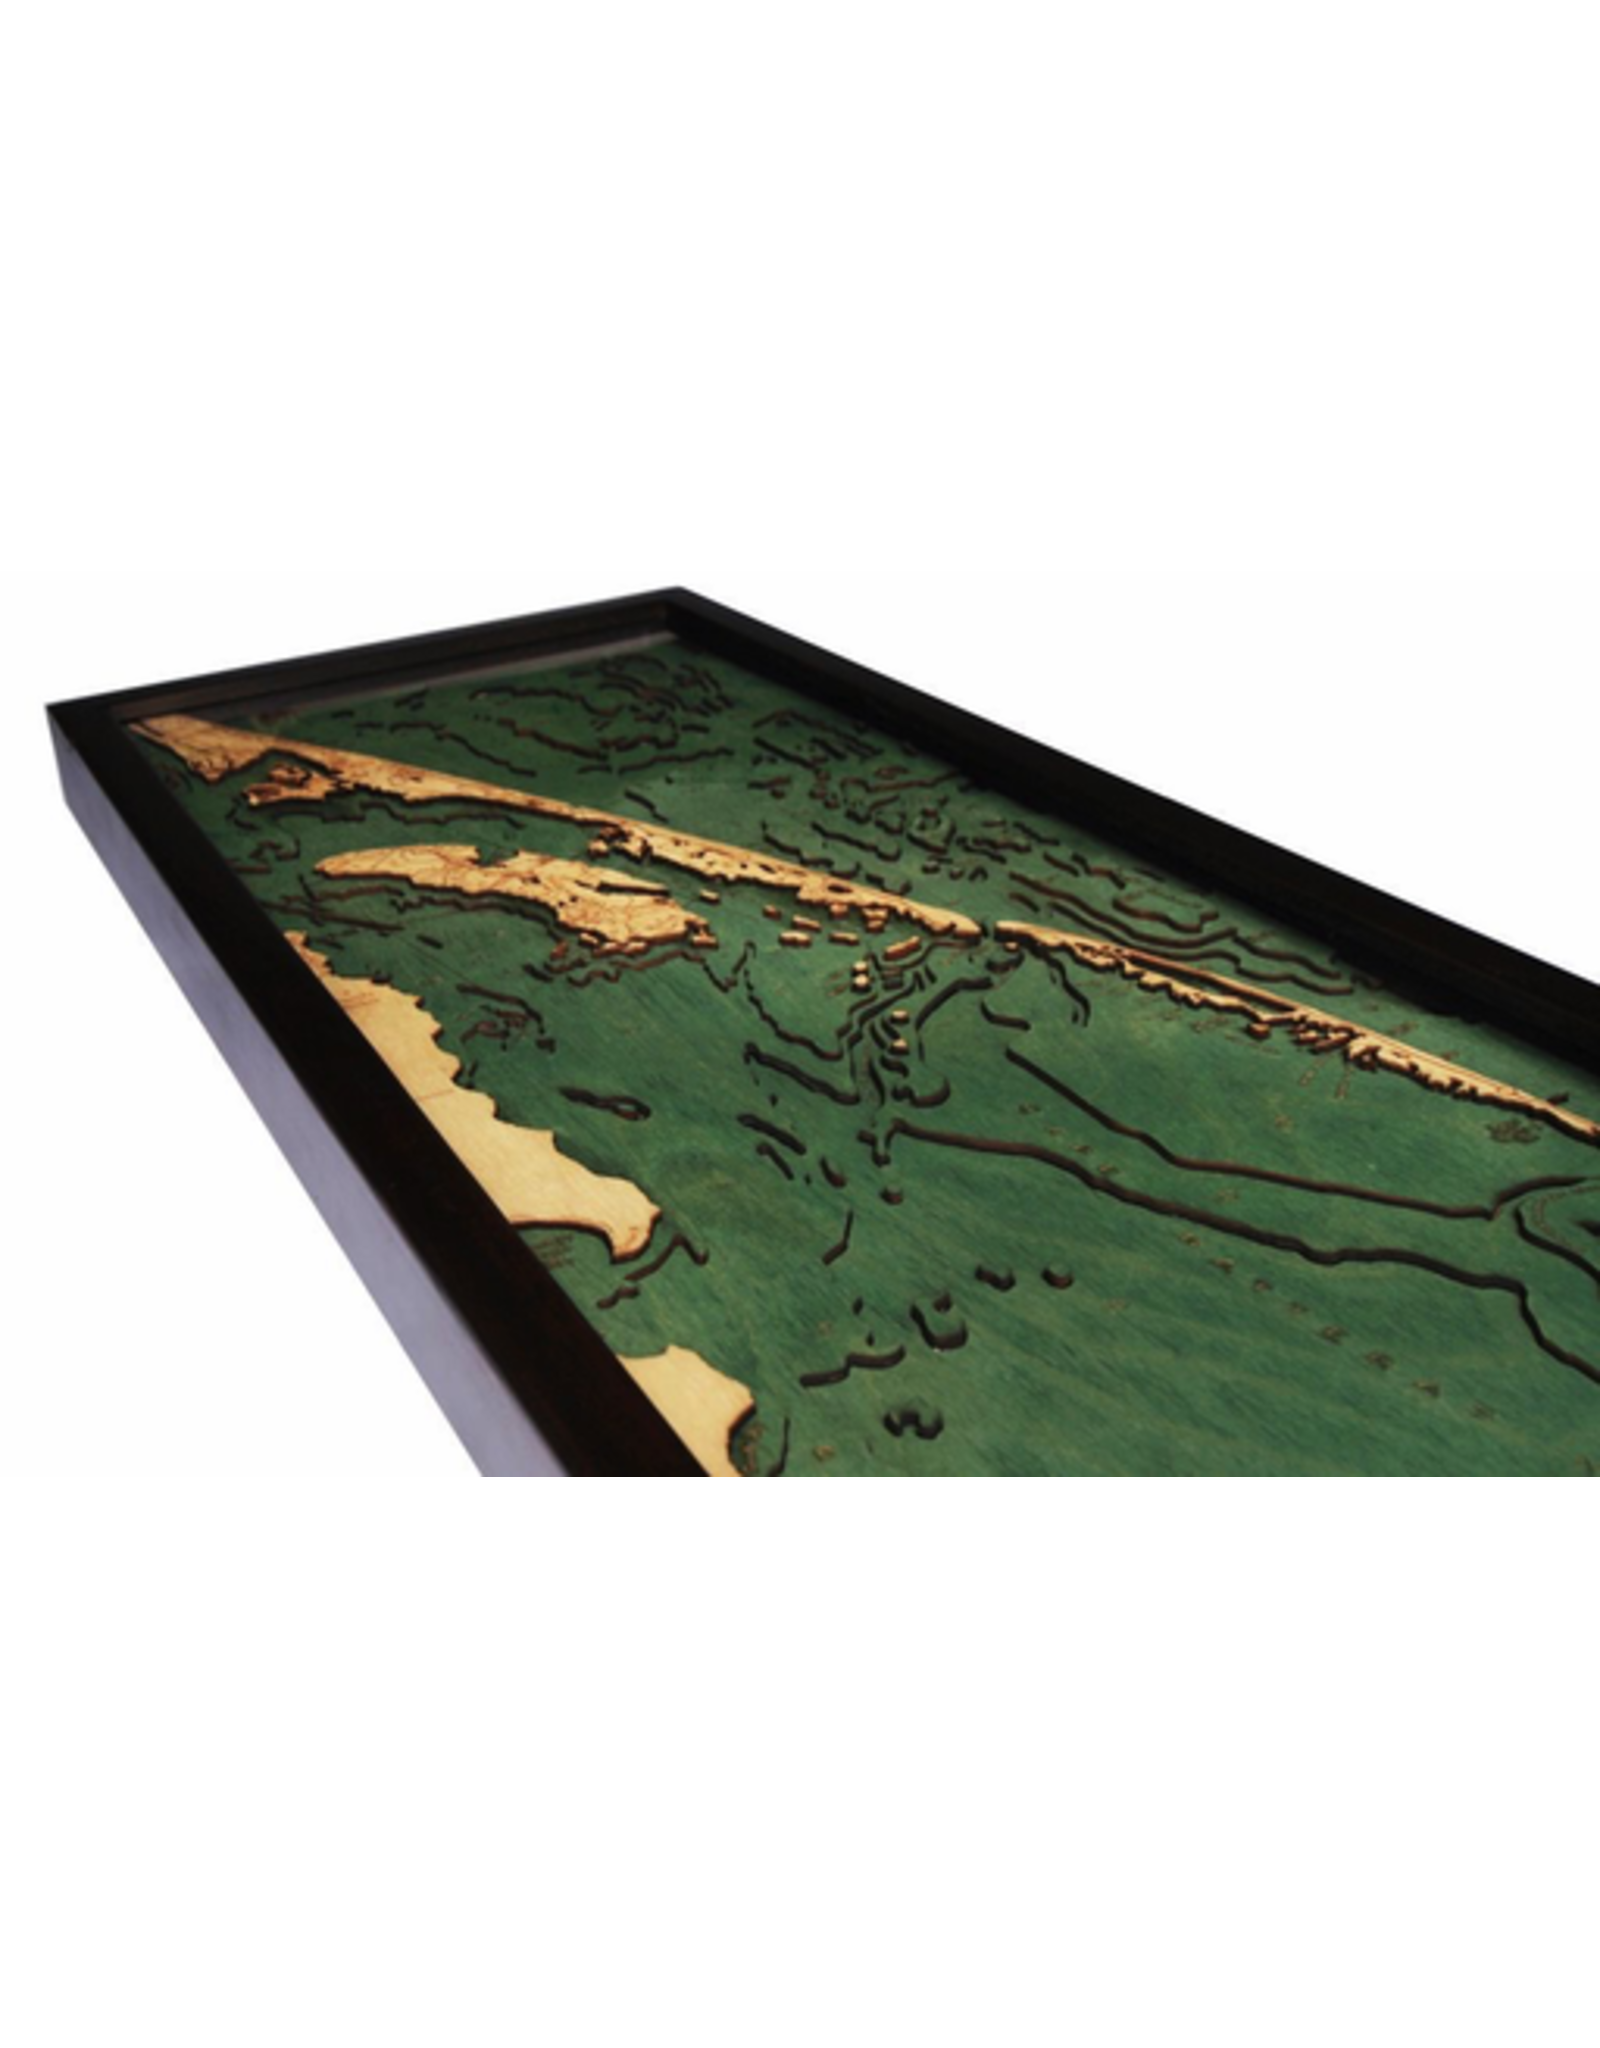 WoodCharts Outer Banks, NC (Bathymetric 3-D Wood Carved Nautical Chart)